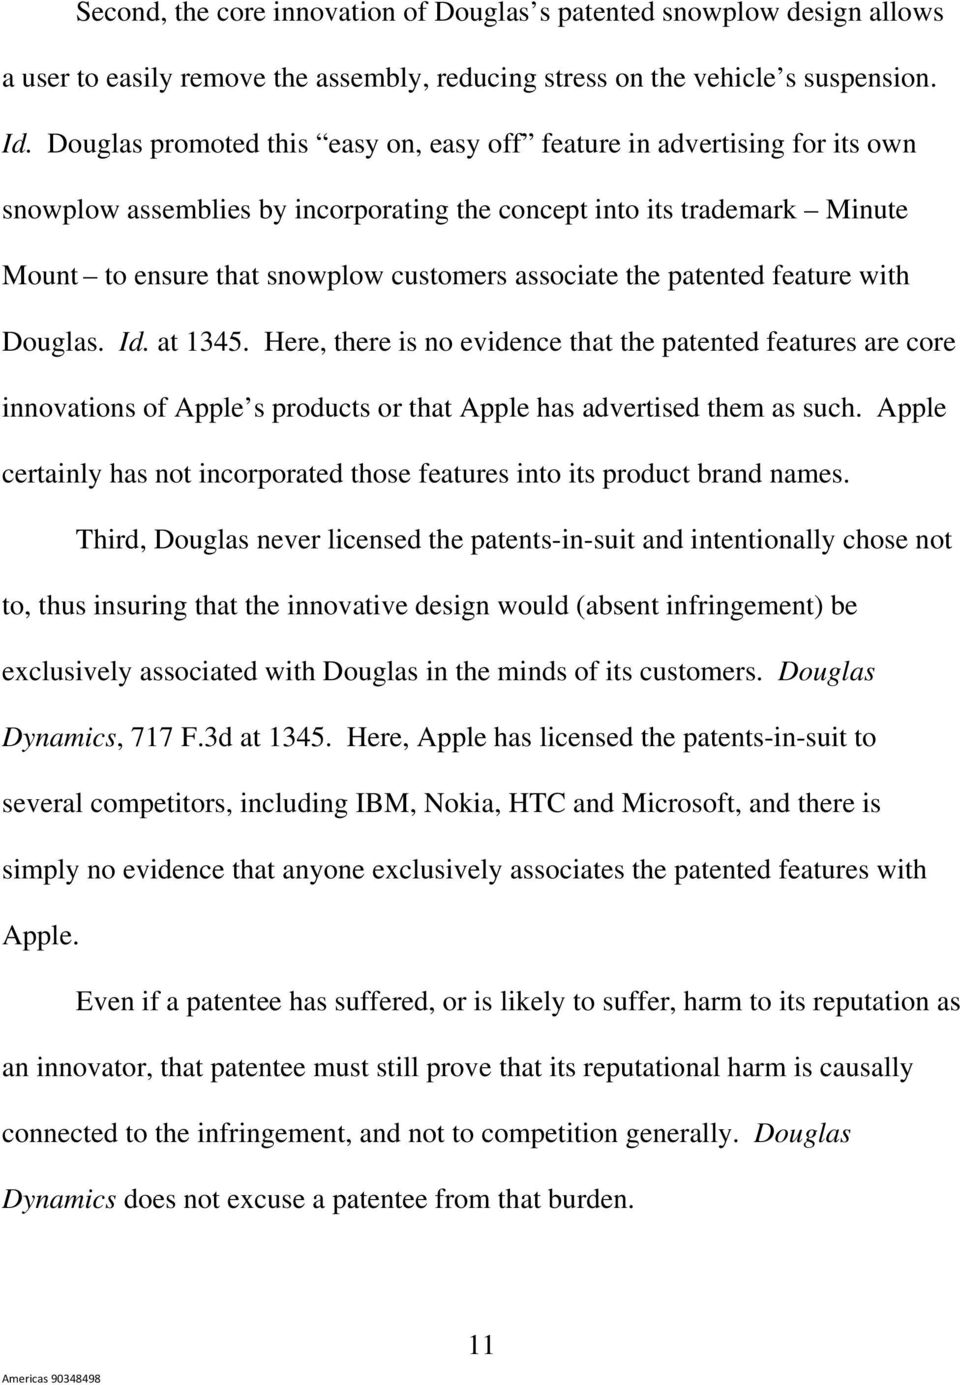 the patented feature with Douglas. Id. at 1345. Here, there is no evidence that the patented features are core innovations of Apple s products or that Apple has advertised them as such.